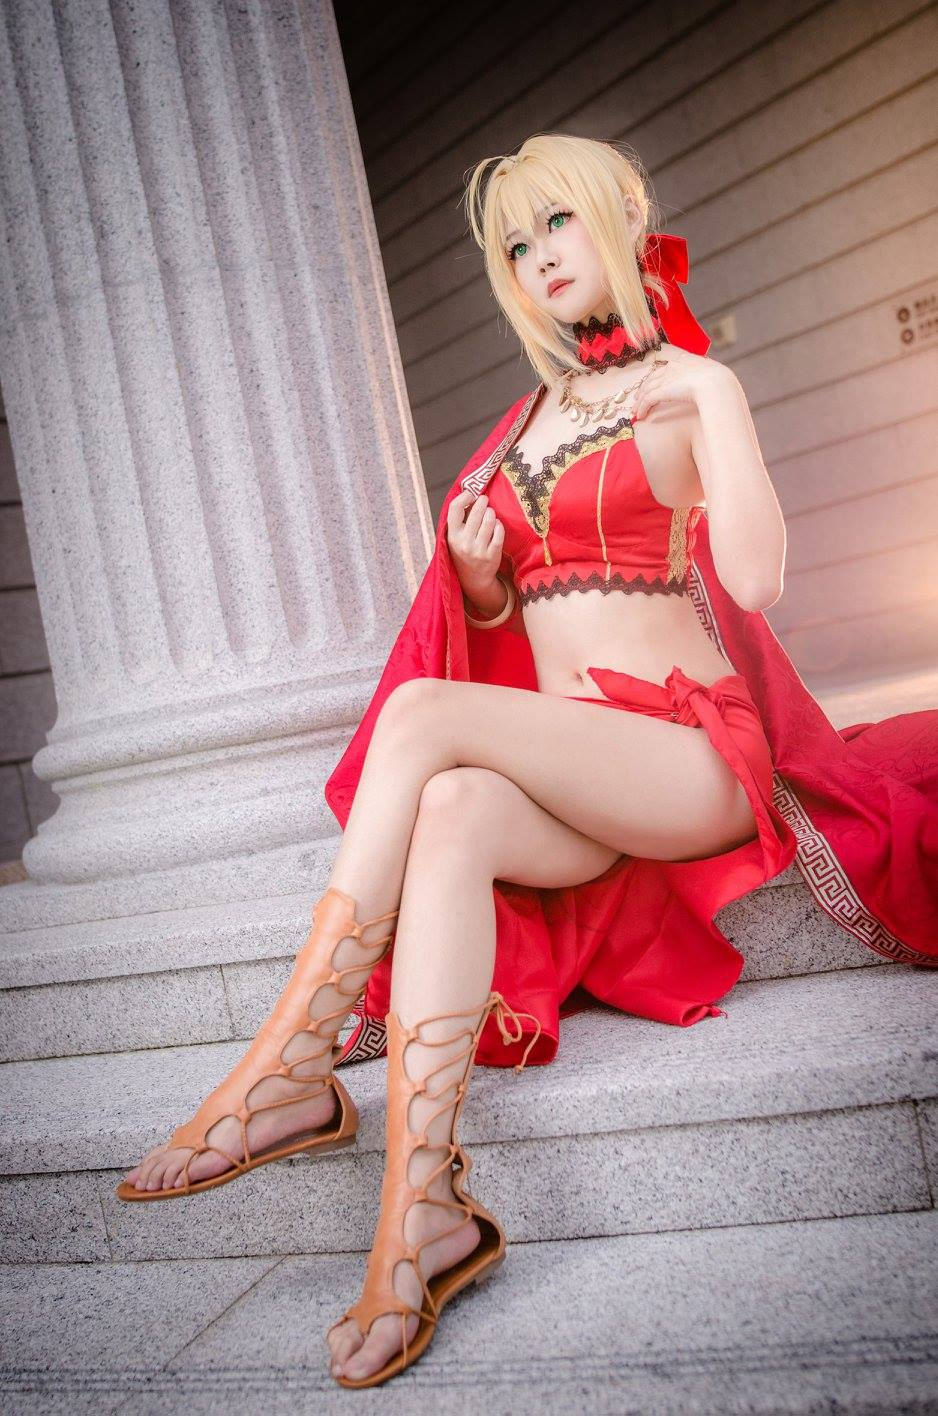 Arty as Nero Claudius from 'Fate/Grand Order' | Arty from Taiwan | MANGA.TOKYO World Cosplayers | Artyさん/『Fate/Grand Order』ネロ・クラウディウス